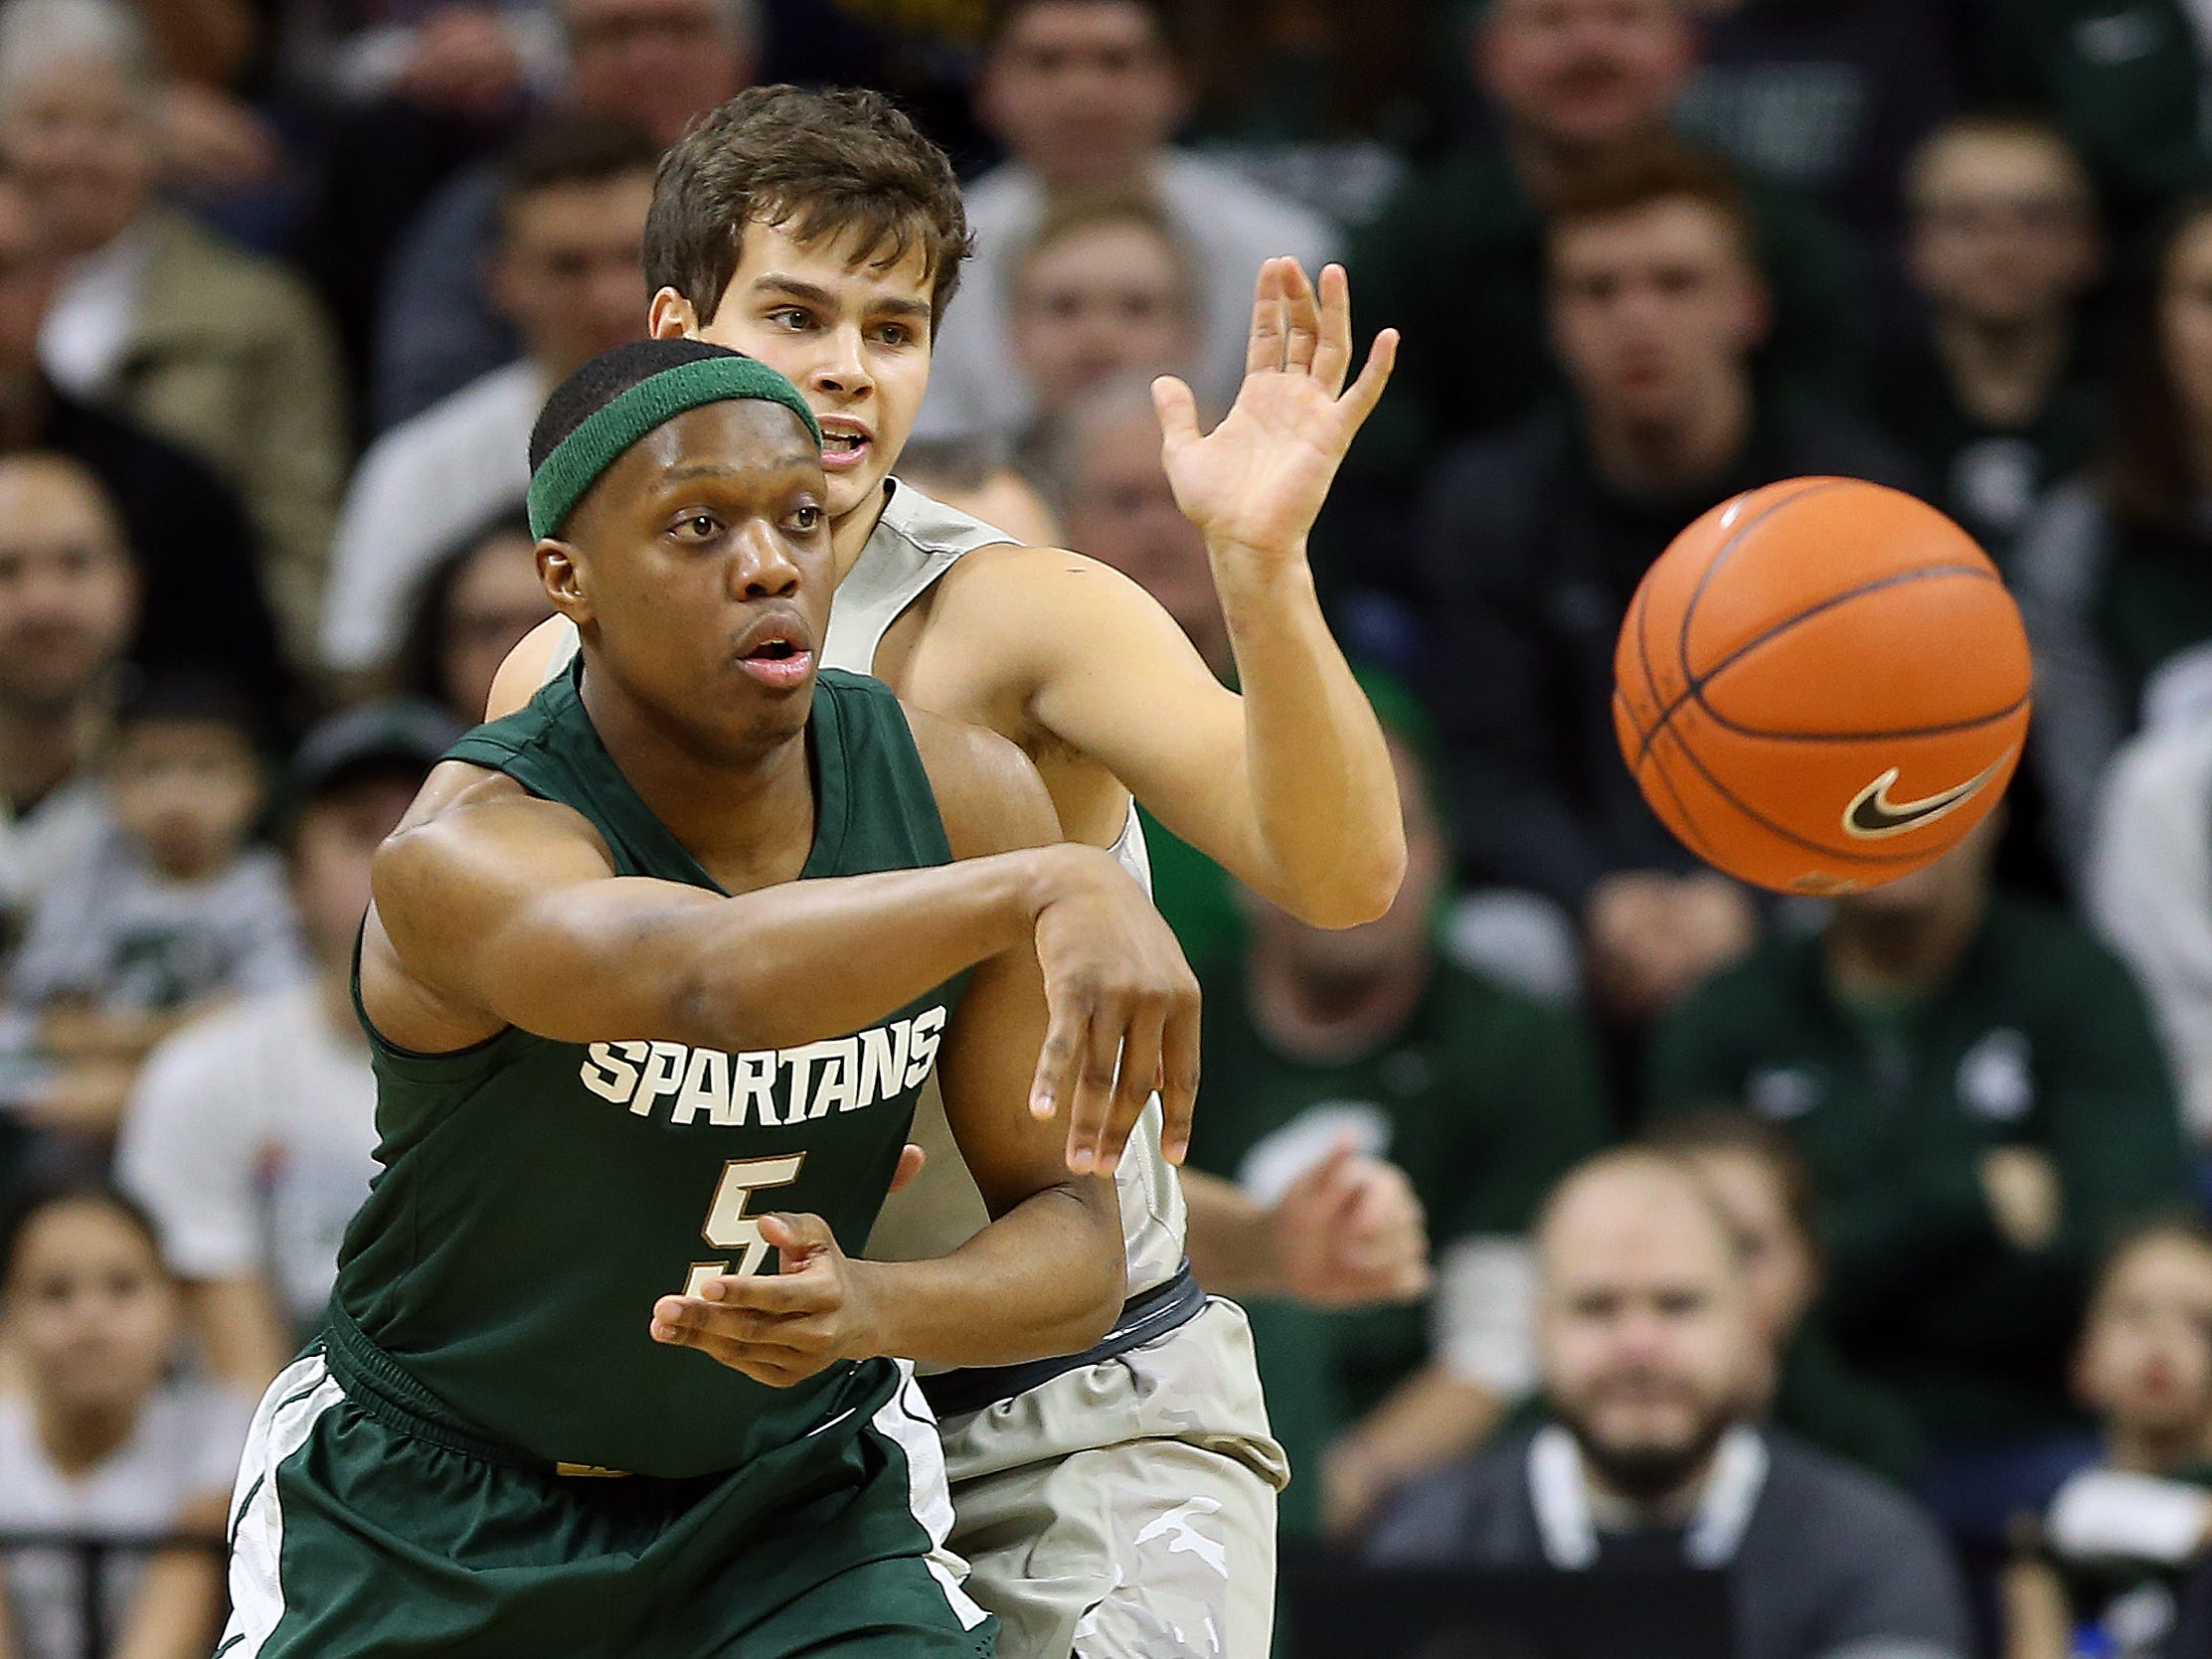 Michigan State Spartans guard Cassius Winston (5) passes the ball against the Oakland Golden Grizzlies during the first half of a game at the Breslin Center.